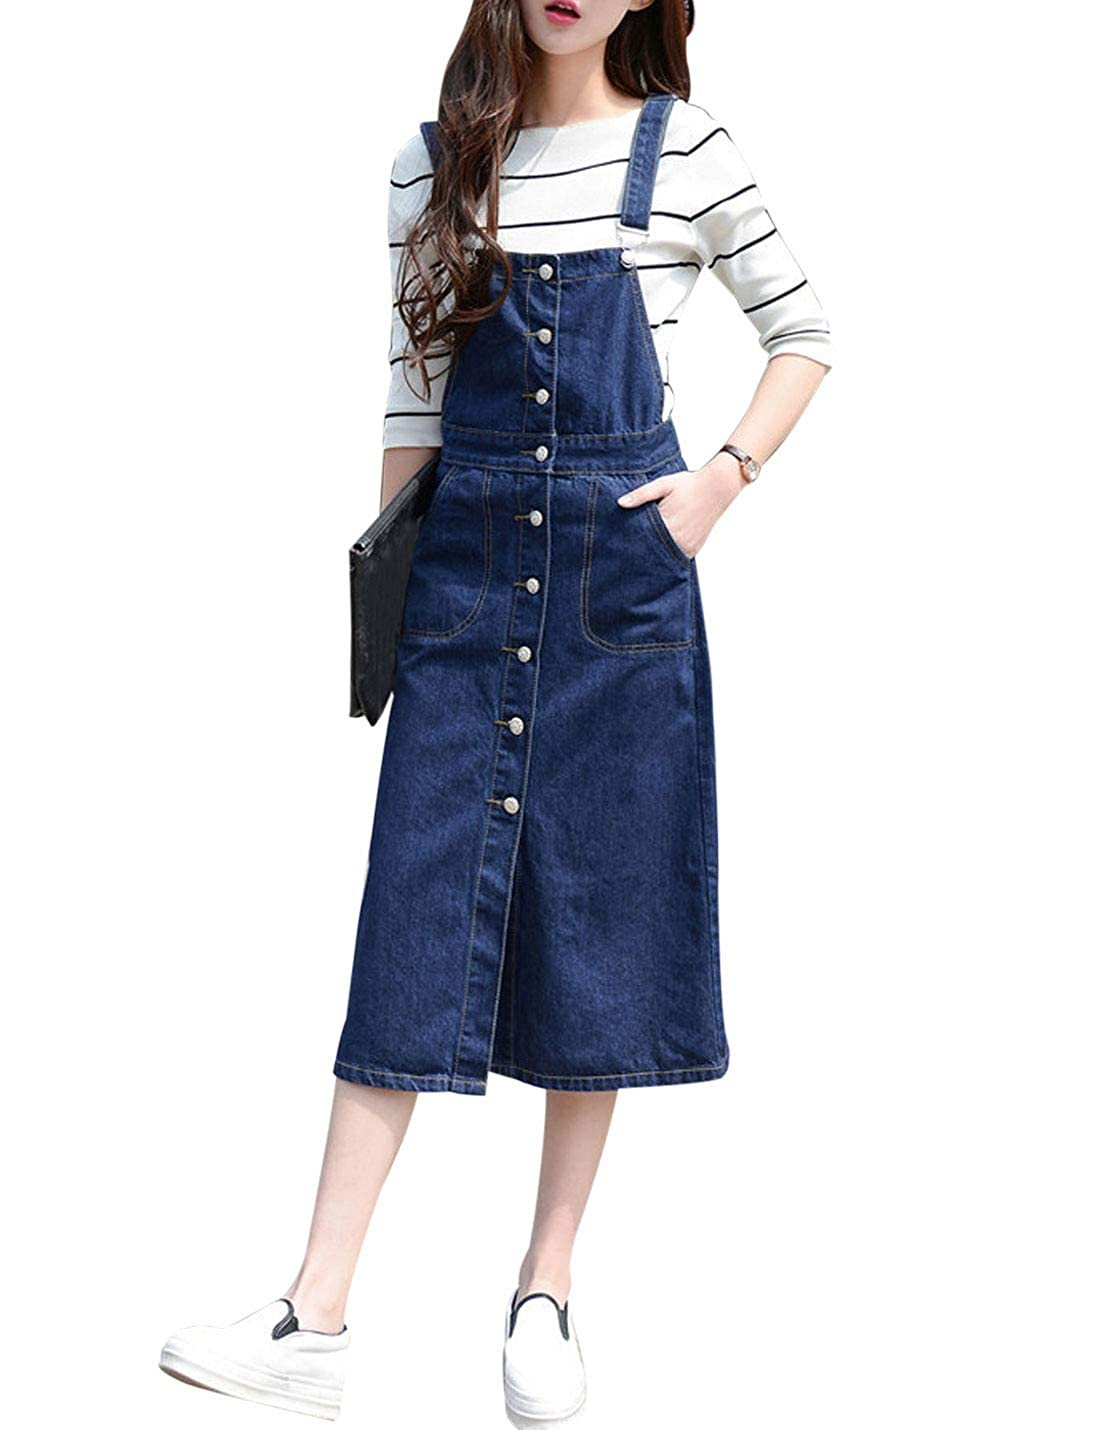 991c1c4d480 Yeokou Women s Midi Length Long Denim Jeans Jumpers Overall Pinafore Dress  Skirt at Amazon Women s Clothing store